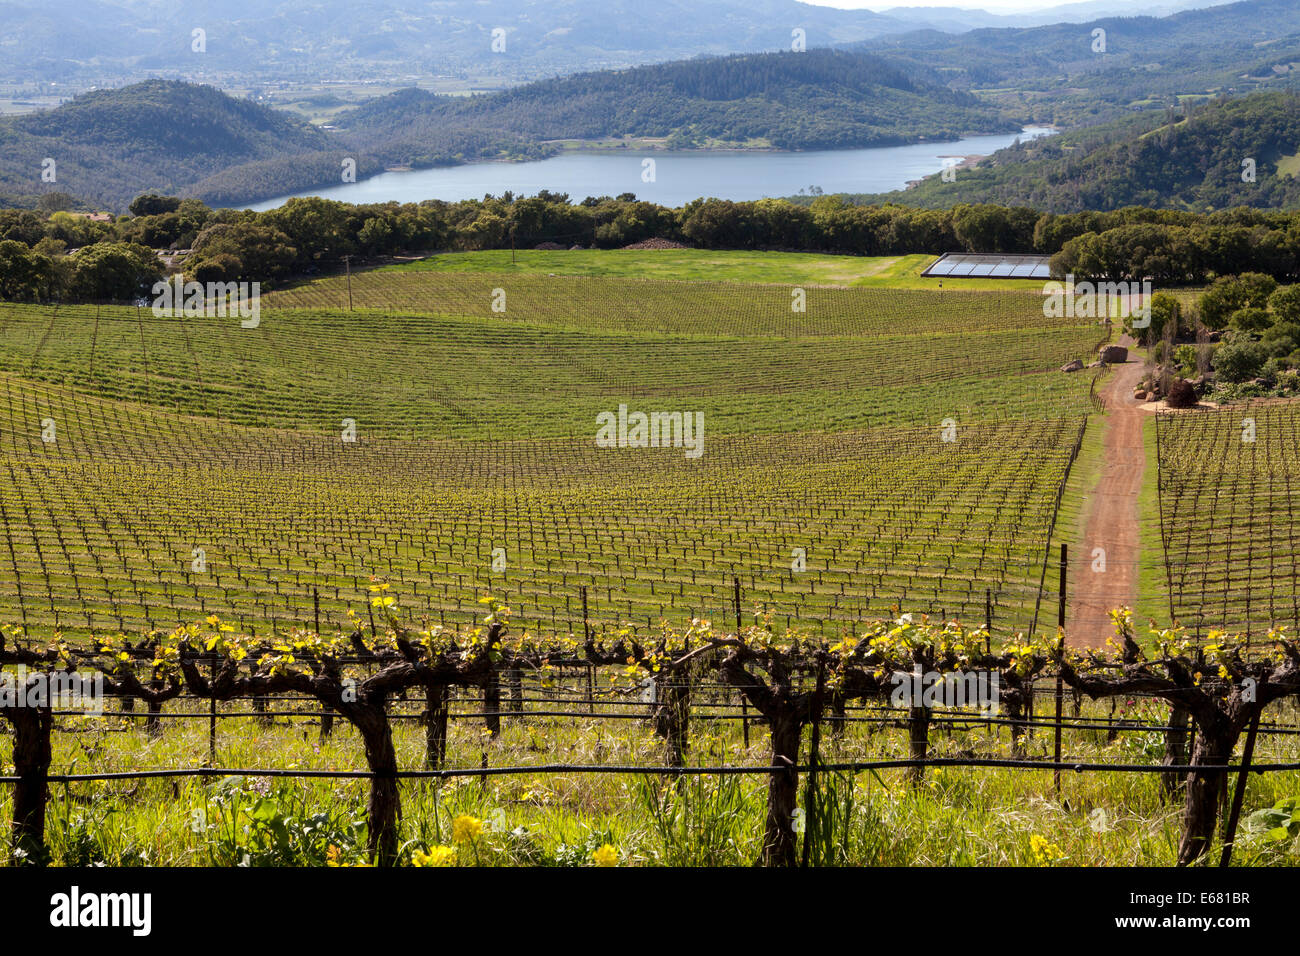 Hennessey Lake viewed from Continuum Estate, Napa Valley, Napa, California, USA - Stock Image